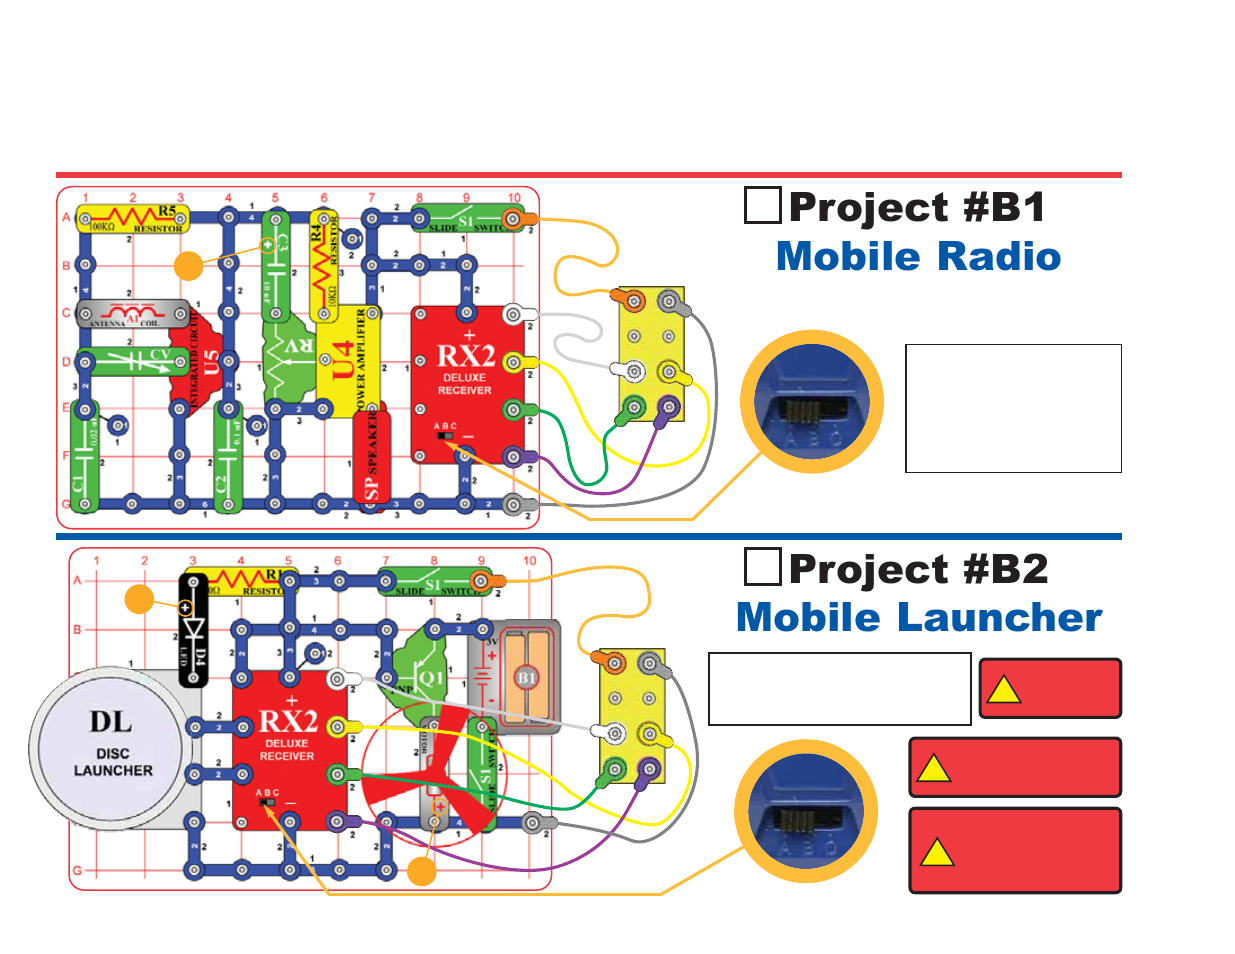 Snap Circuits 750 Manual Wiring Diagram For Professional Kits Project B1 Mobile Radio B2 Launcher Extreme Sc Pro